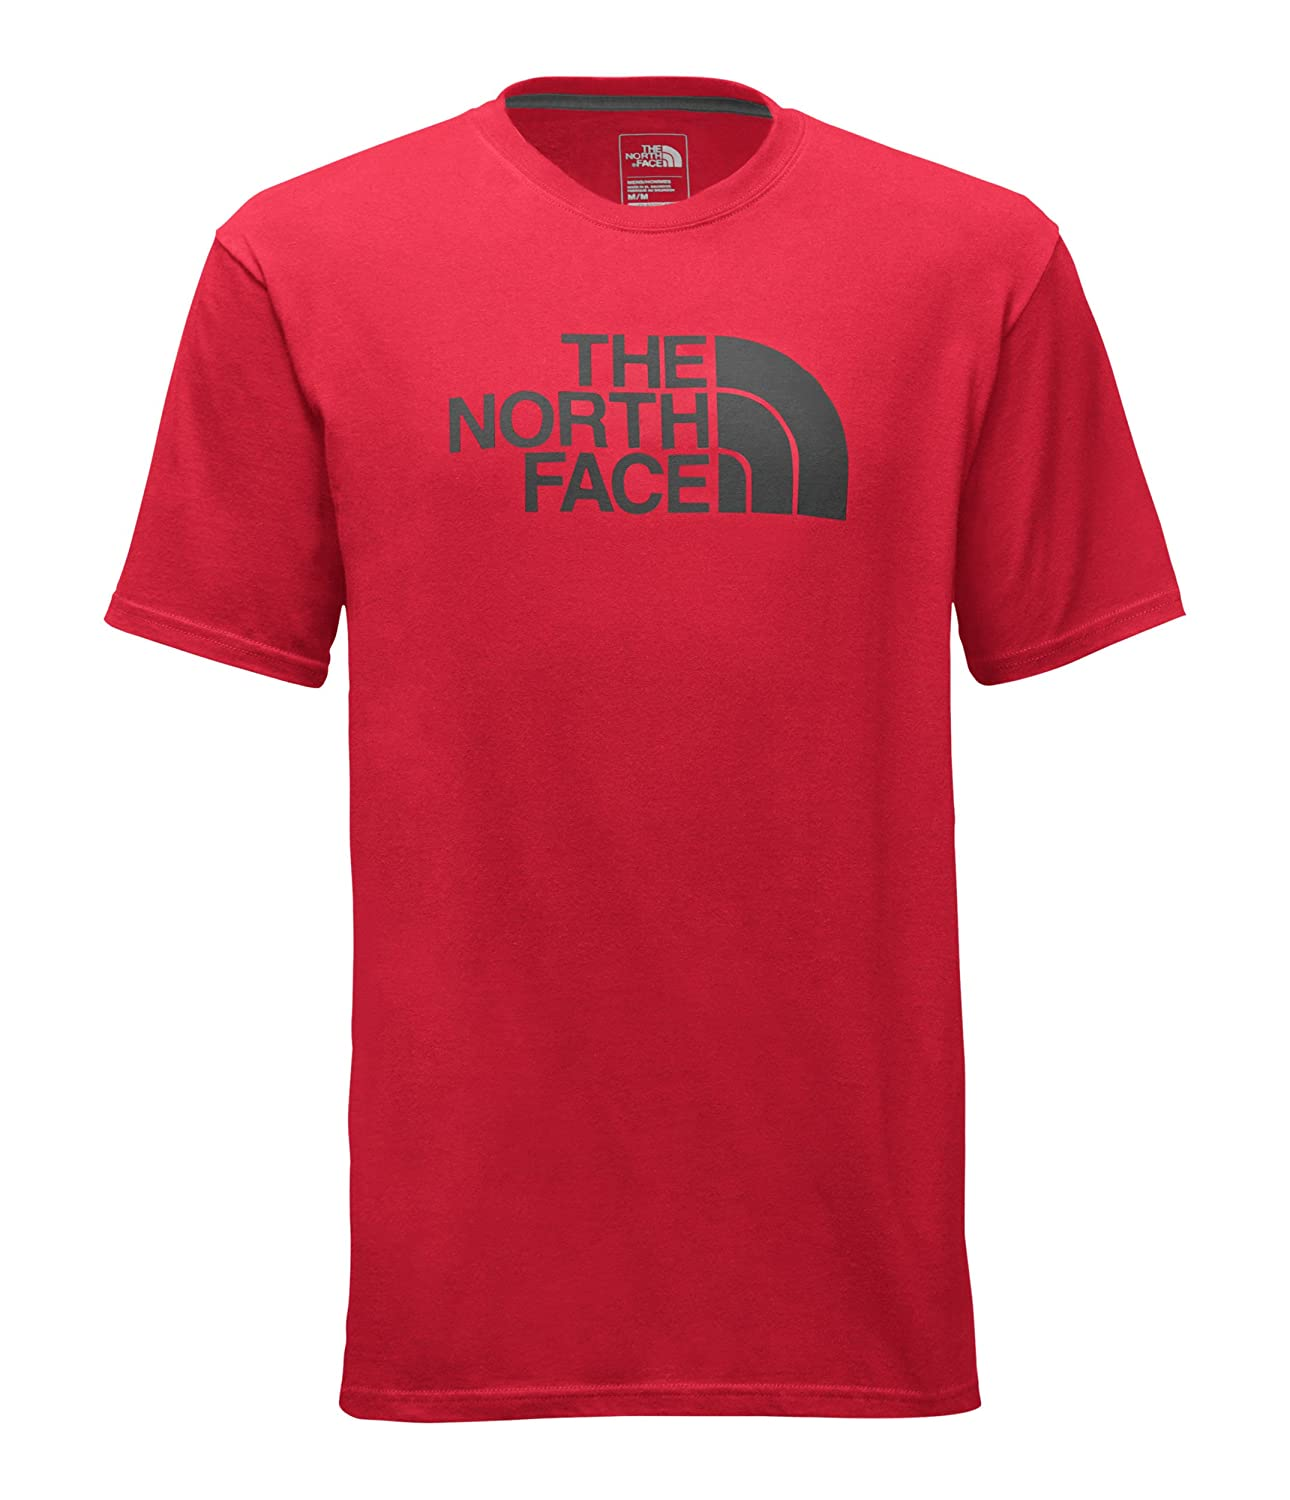 The North Face S/S Half Dome Tee Men's CH2T